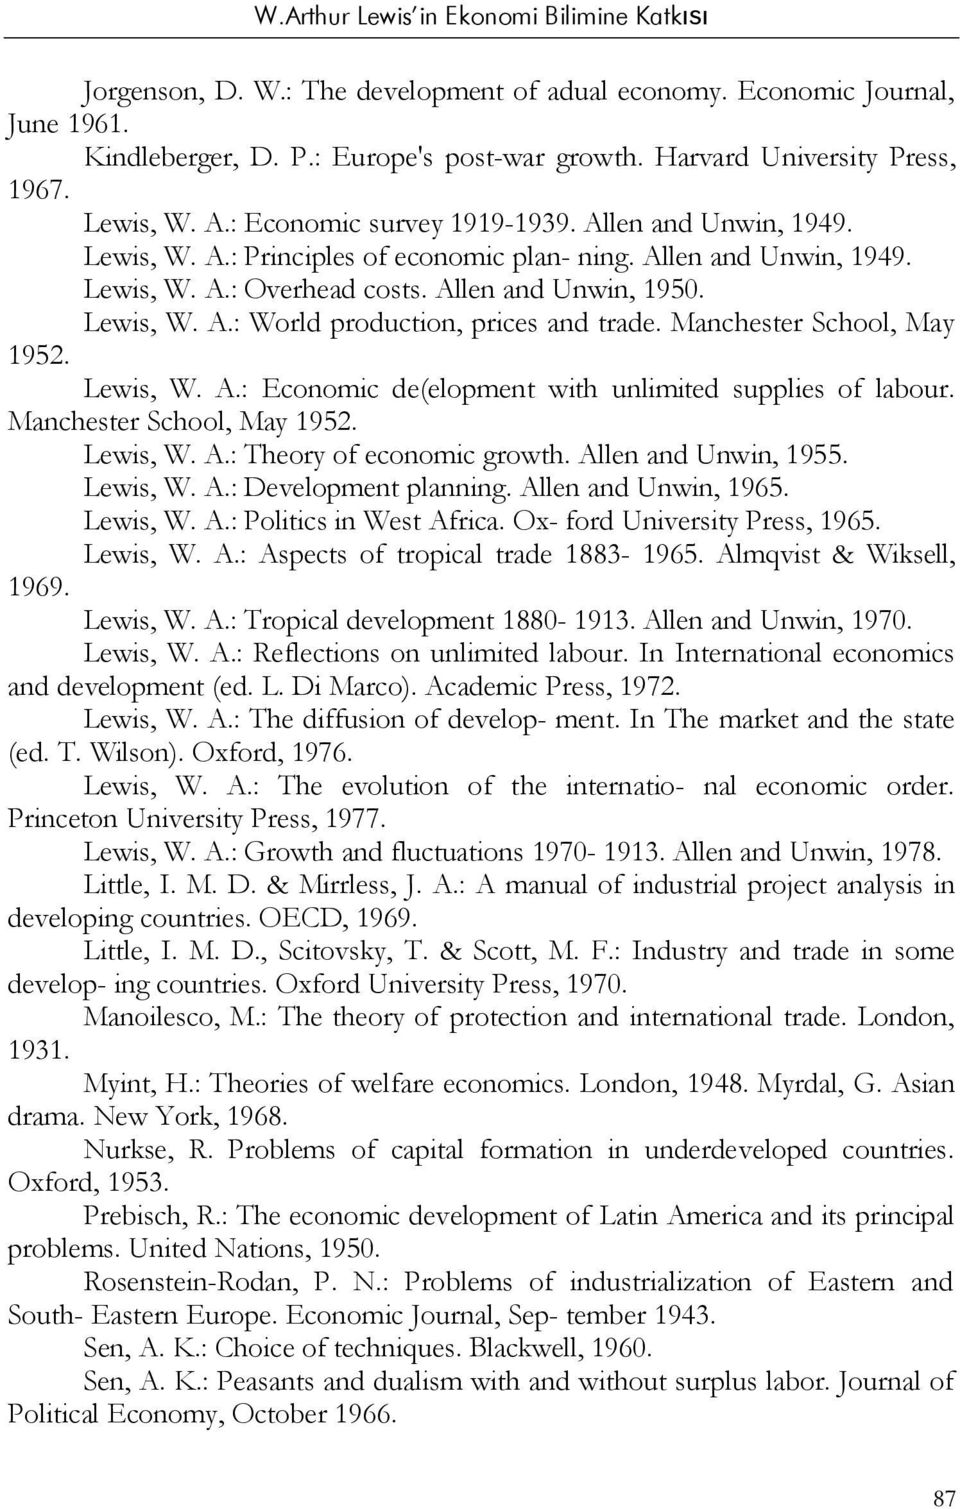 Manchester School, May 1952. Lewis, W. A.: Economic de(elopment with unlimited supplies of labour. Manchester School, May 1952. Lewis, W. A.: Theory of economic growth. Allen and Unwin, 1955.